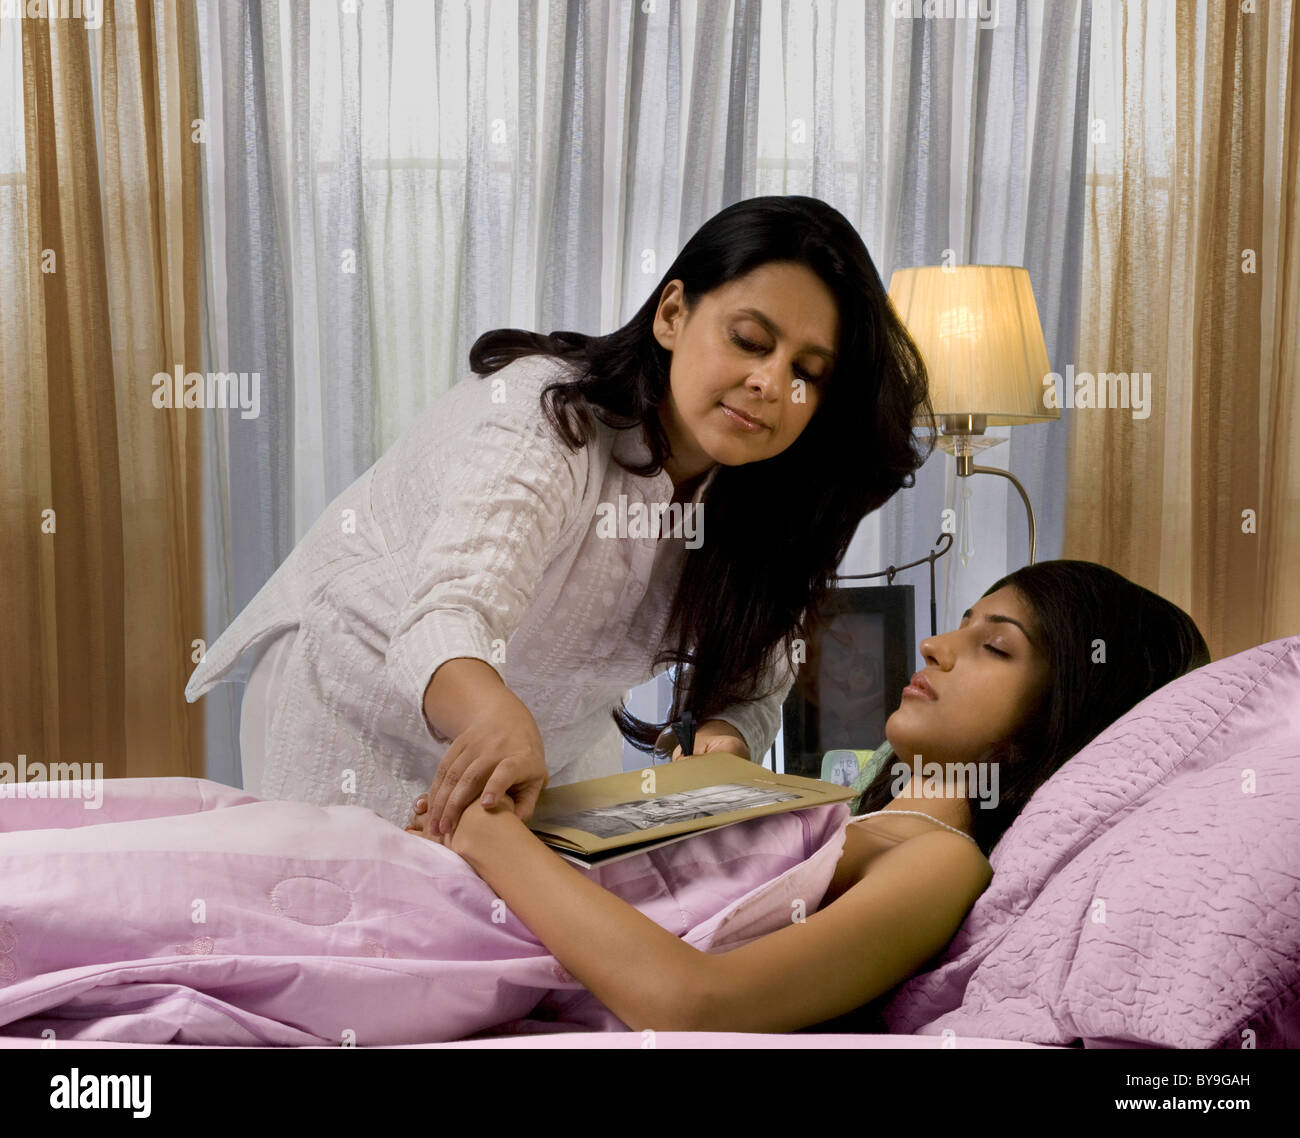 Mother removing a book from her daughters clutches - Stock Image